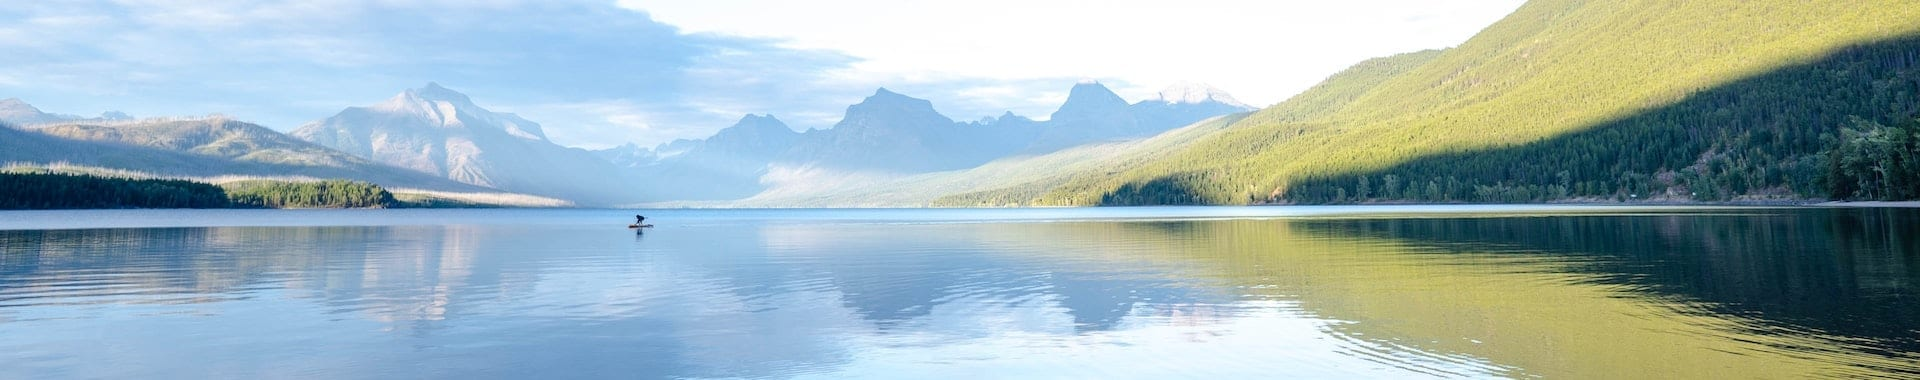 A paddle boarder on a picturesque lake in Montana, USA